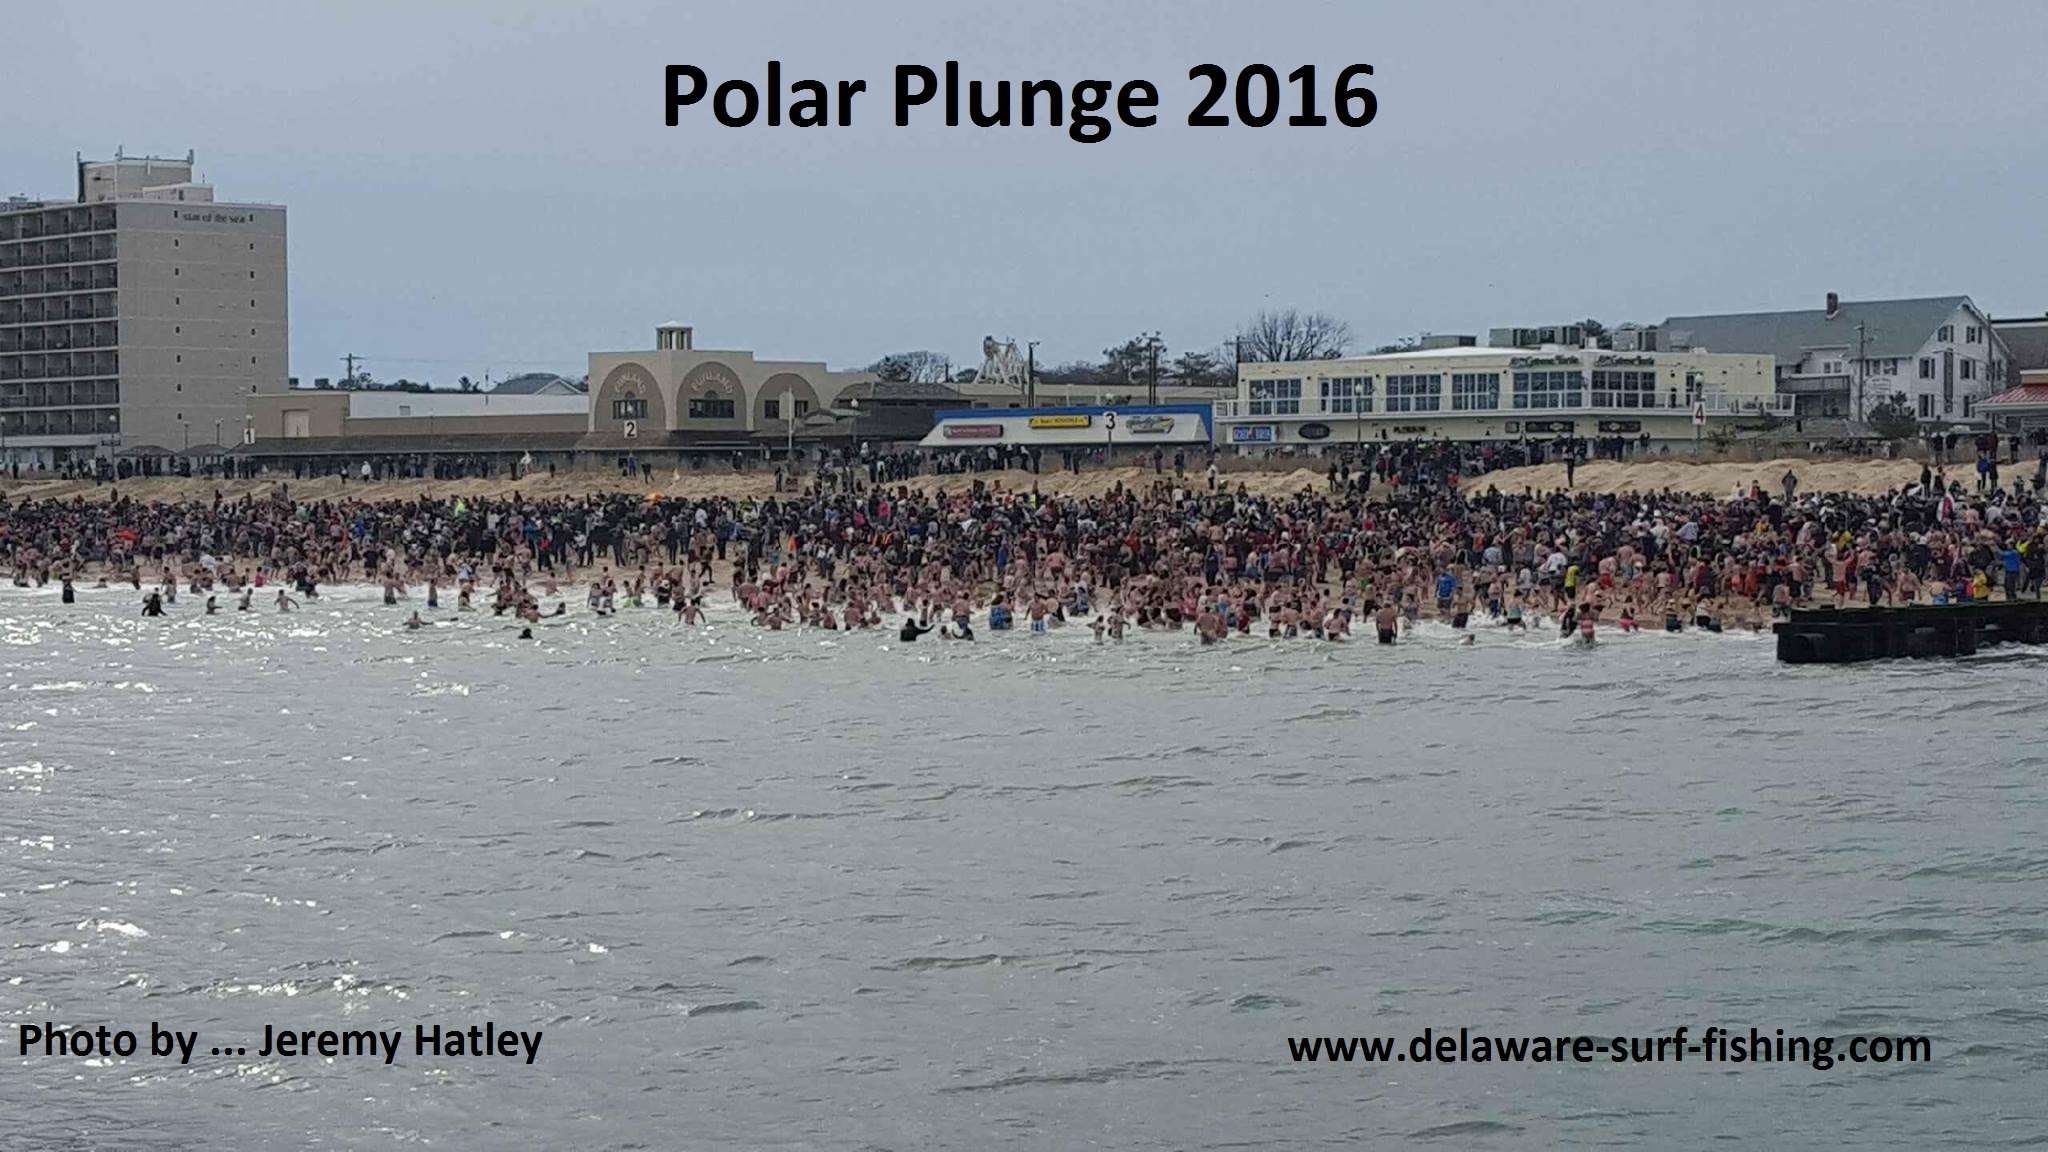 polar plunge 2016, Rehoboth beach, Lewes, delaware, sussex county